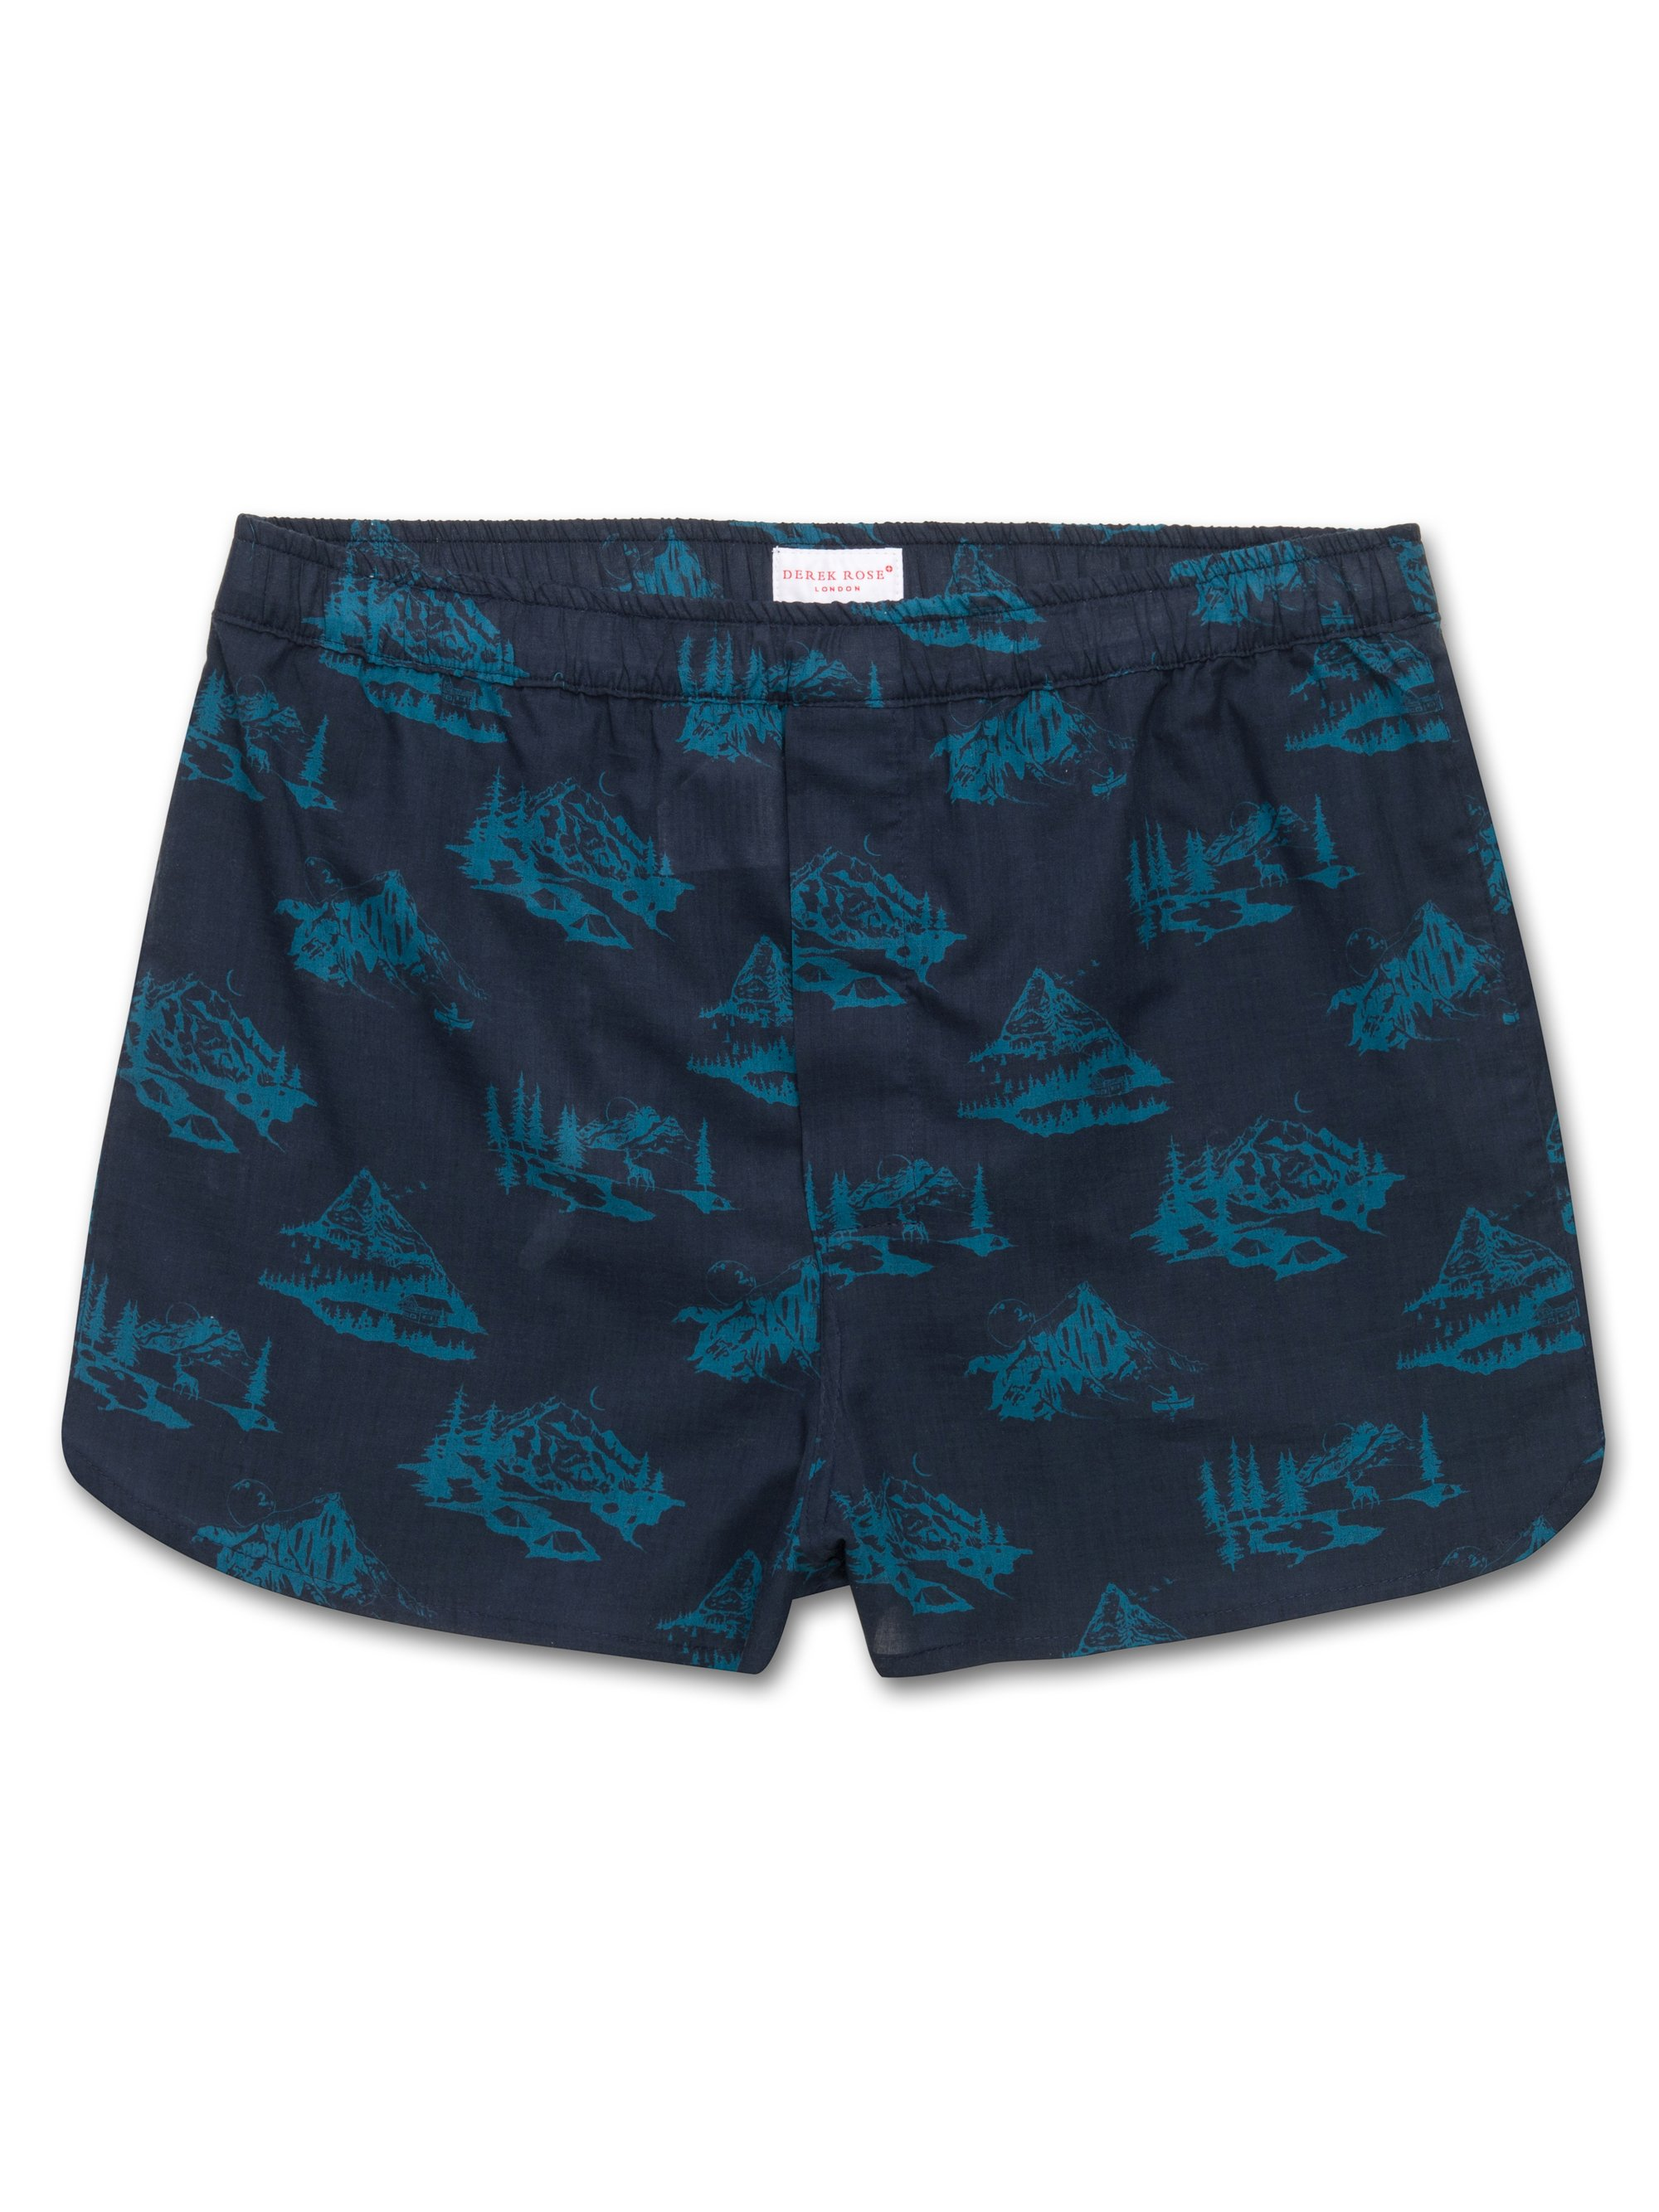 Men's Modern Fit Boxer Shorts Toile 5 Cotton Batiste Teal